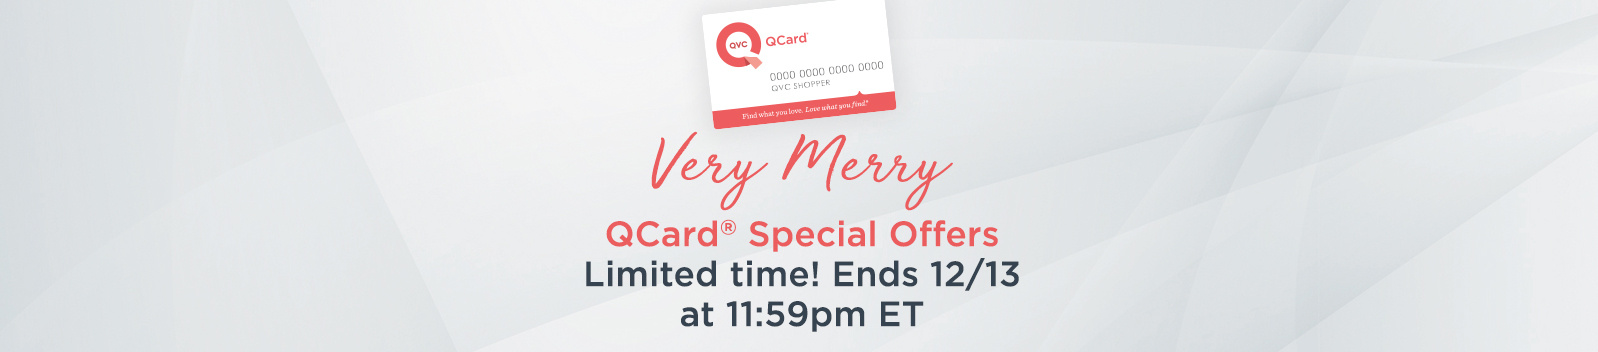 Very Merry QCard® Special Offers Limited time! Ends 12/13 at 11:59pm ET